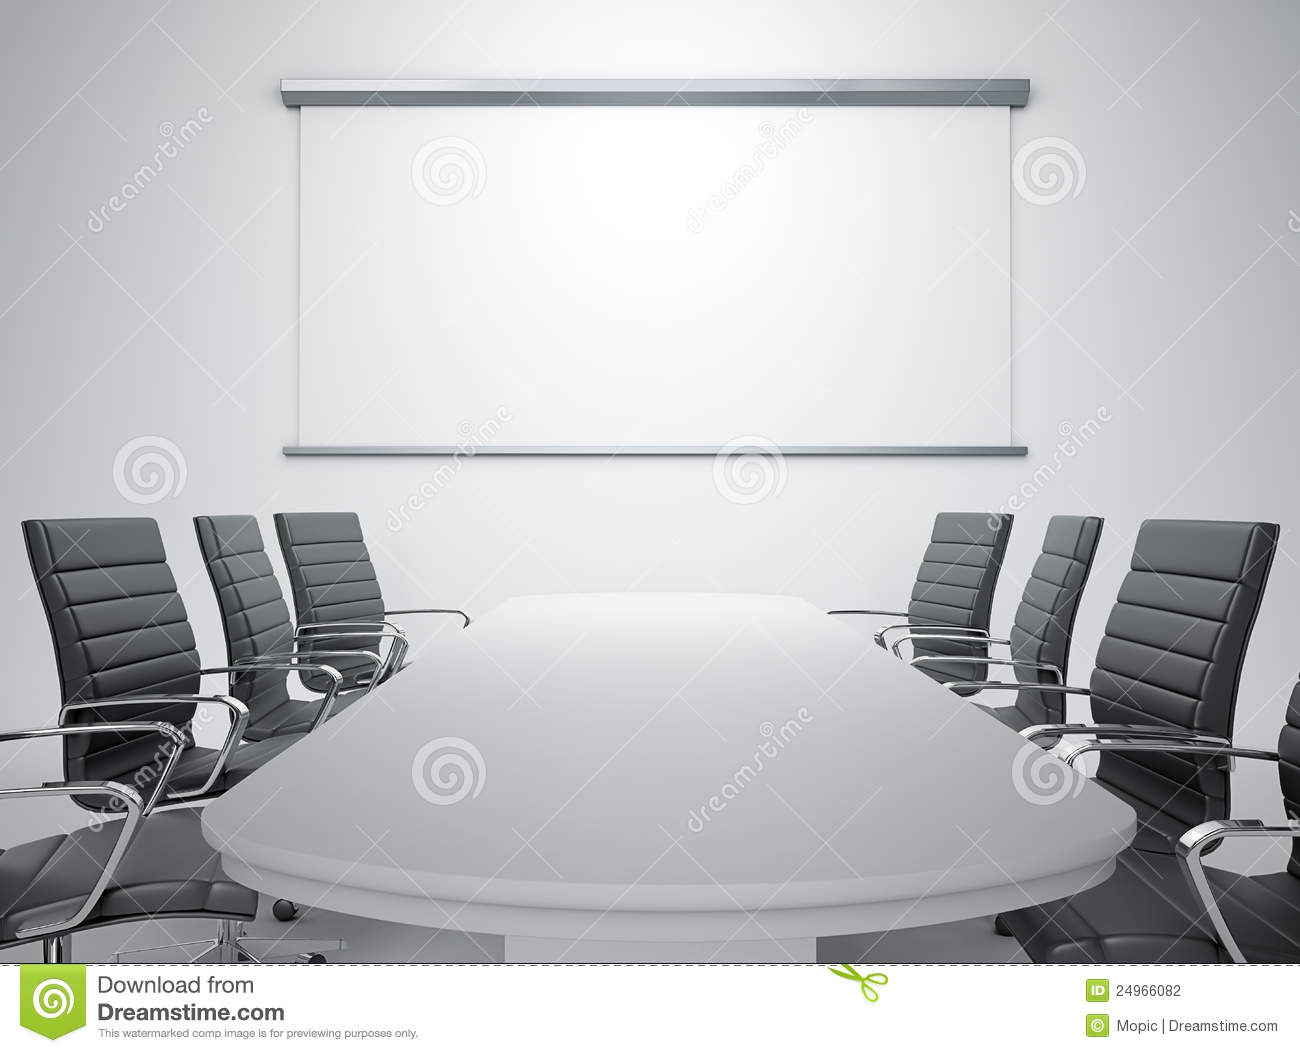 Empty Meeting Room Stock Photography - Image: 24966082